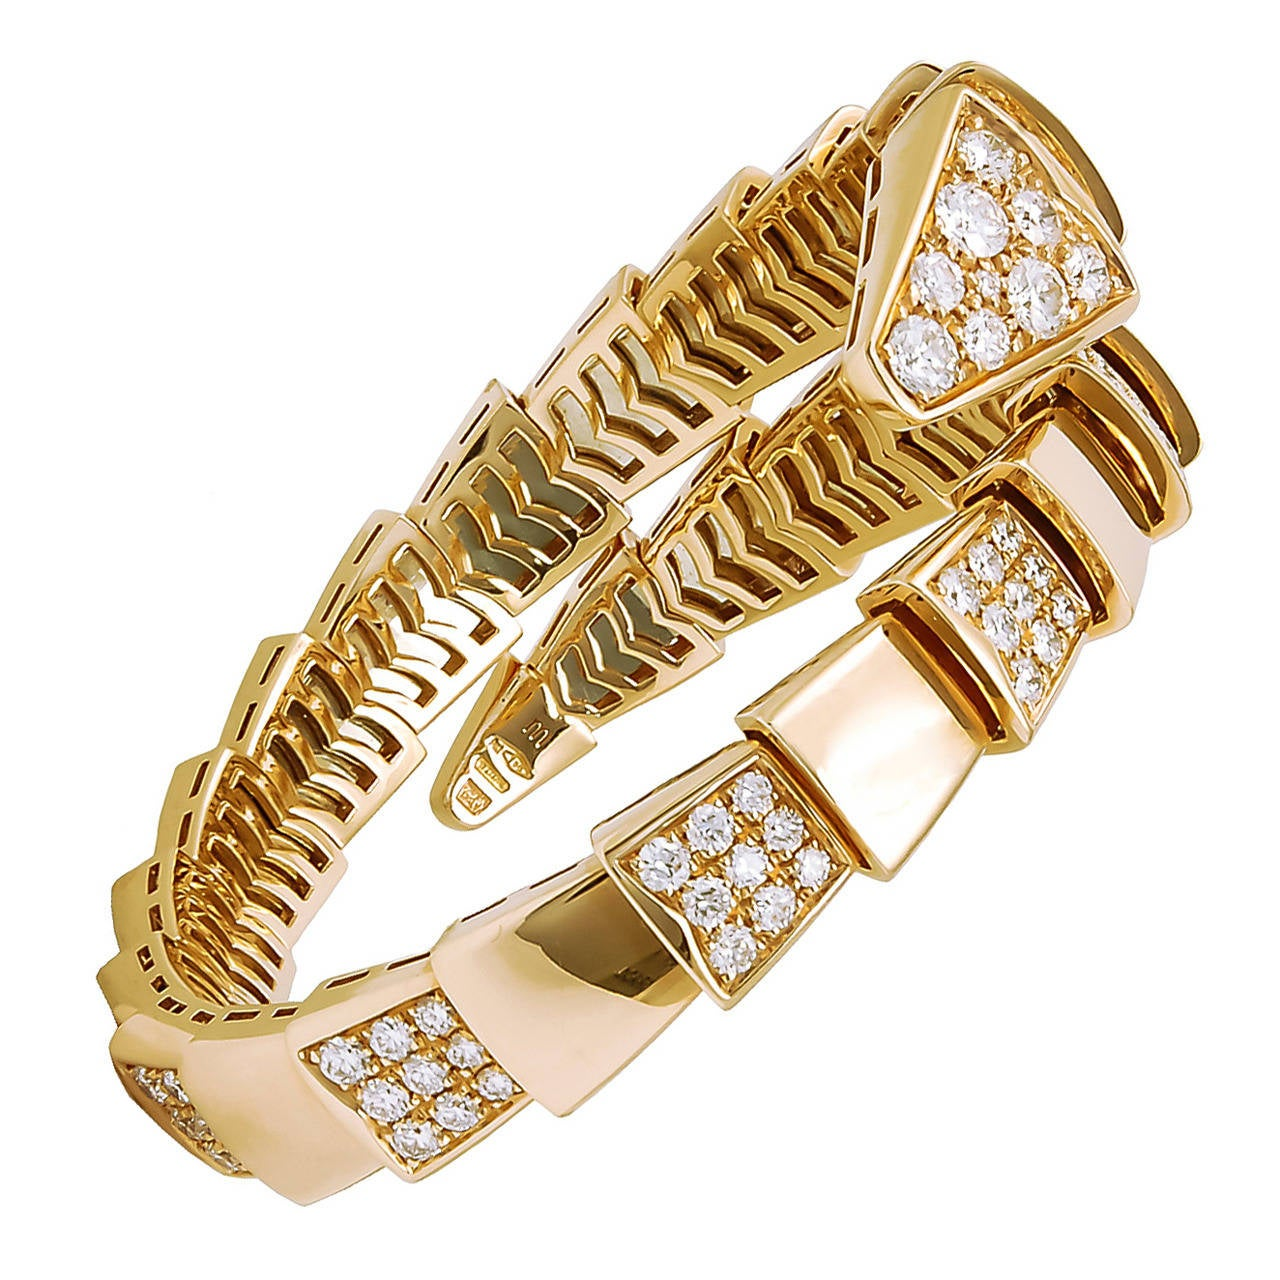 Bulgari Diamond Serpenti Bangle 1